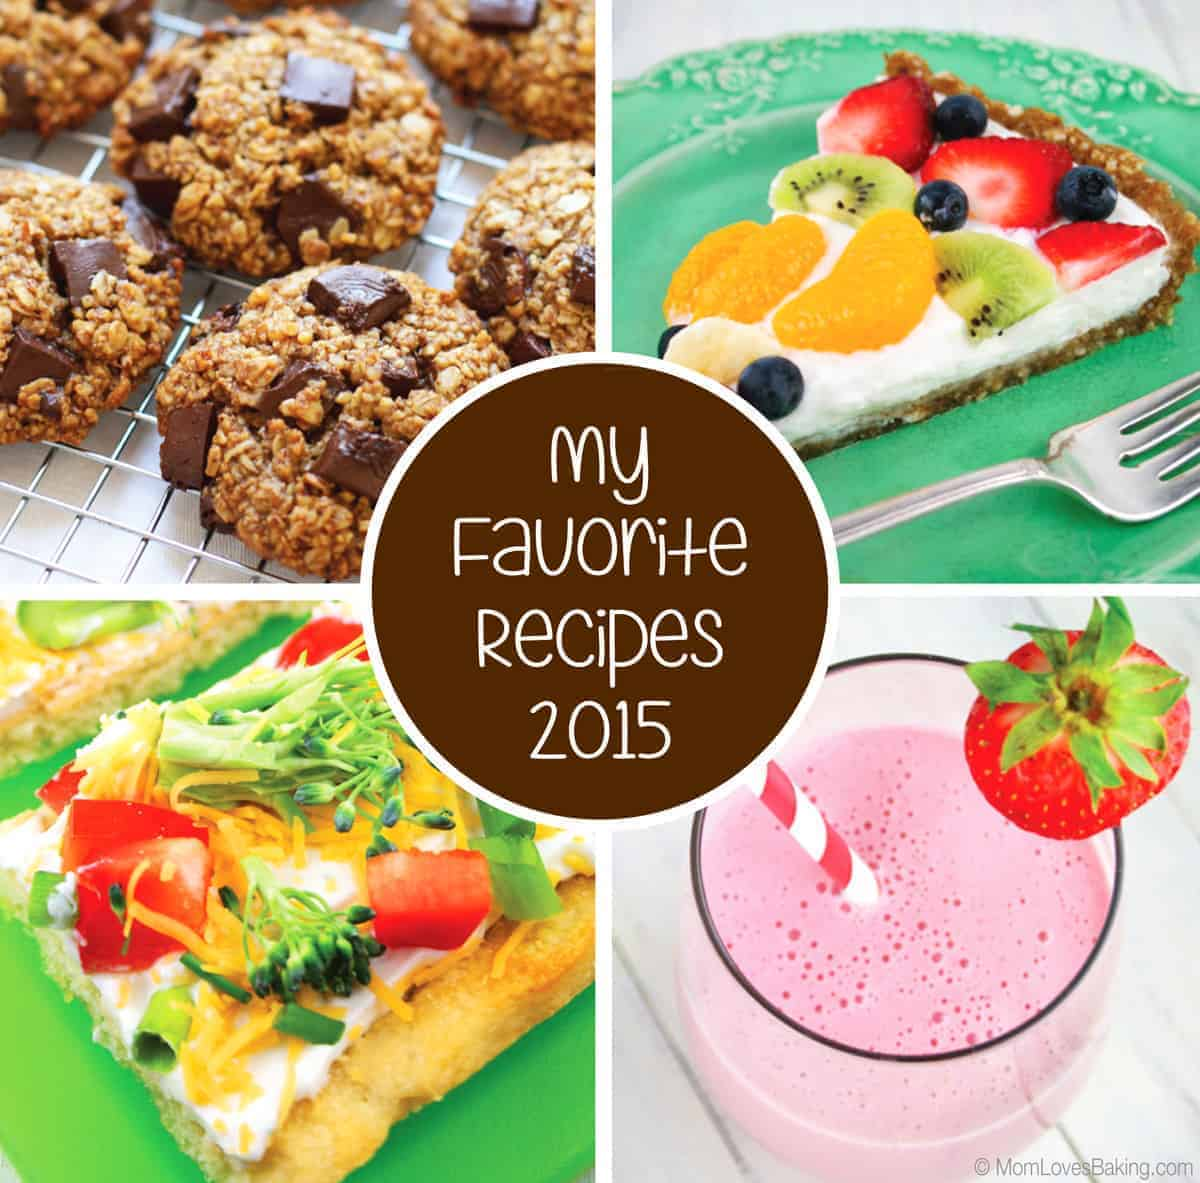 Top 20 Favorite Recipes of 2015